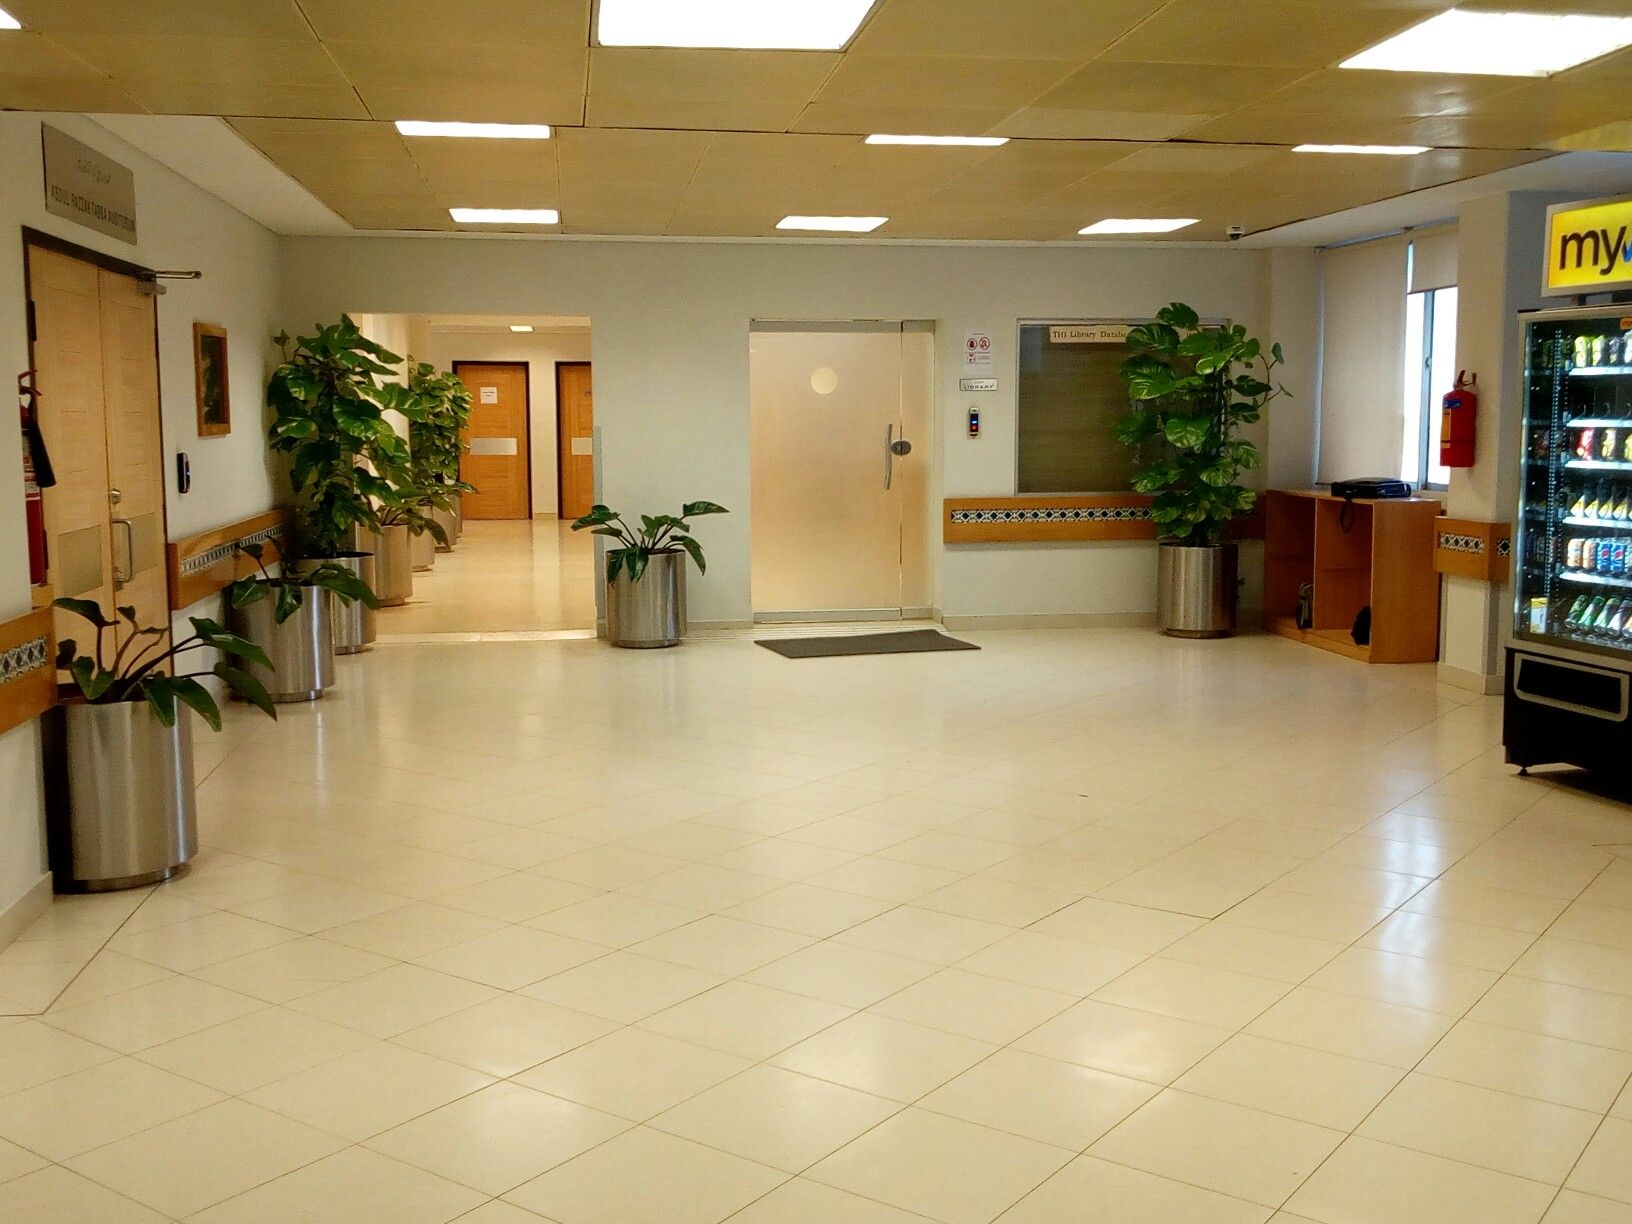 Tabba Heart Hospital Have Plants In Their Clinics To Make The Environment  Soothing And Relaxing.